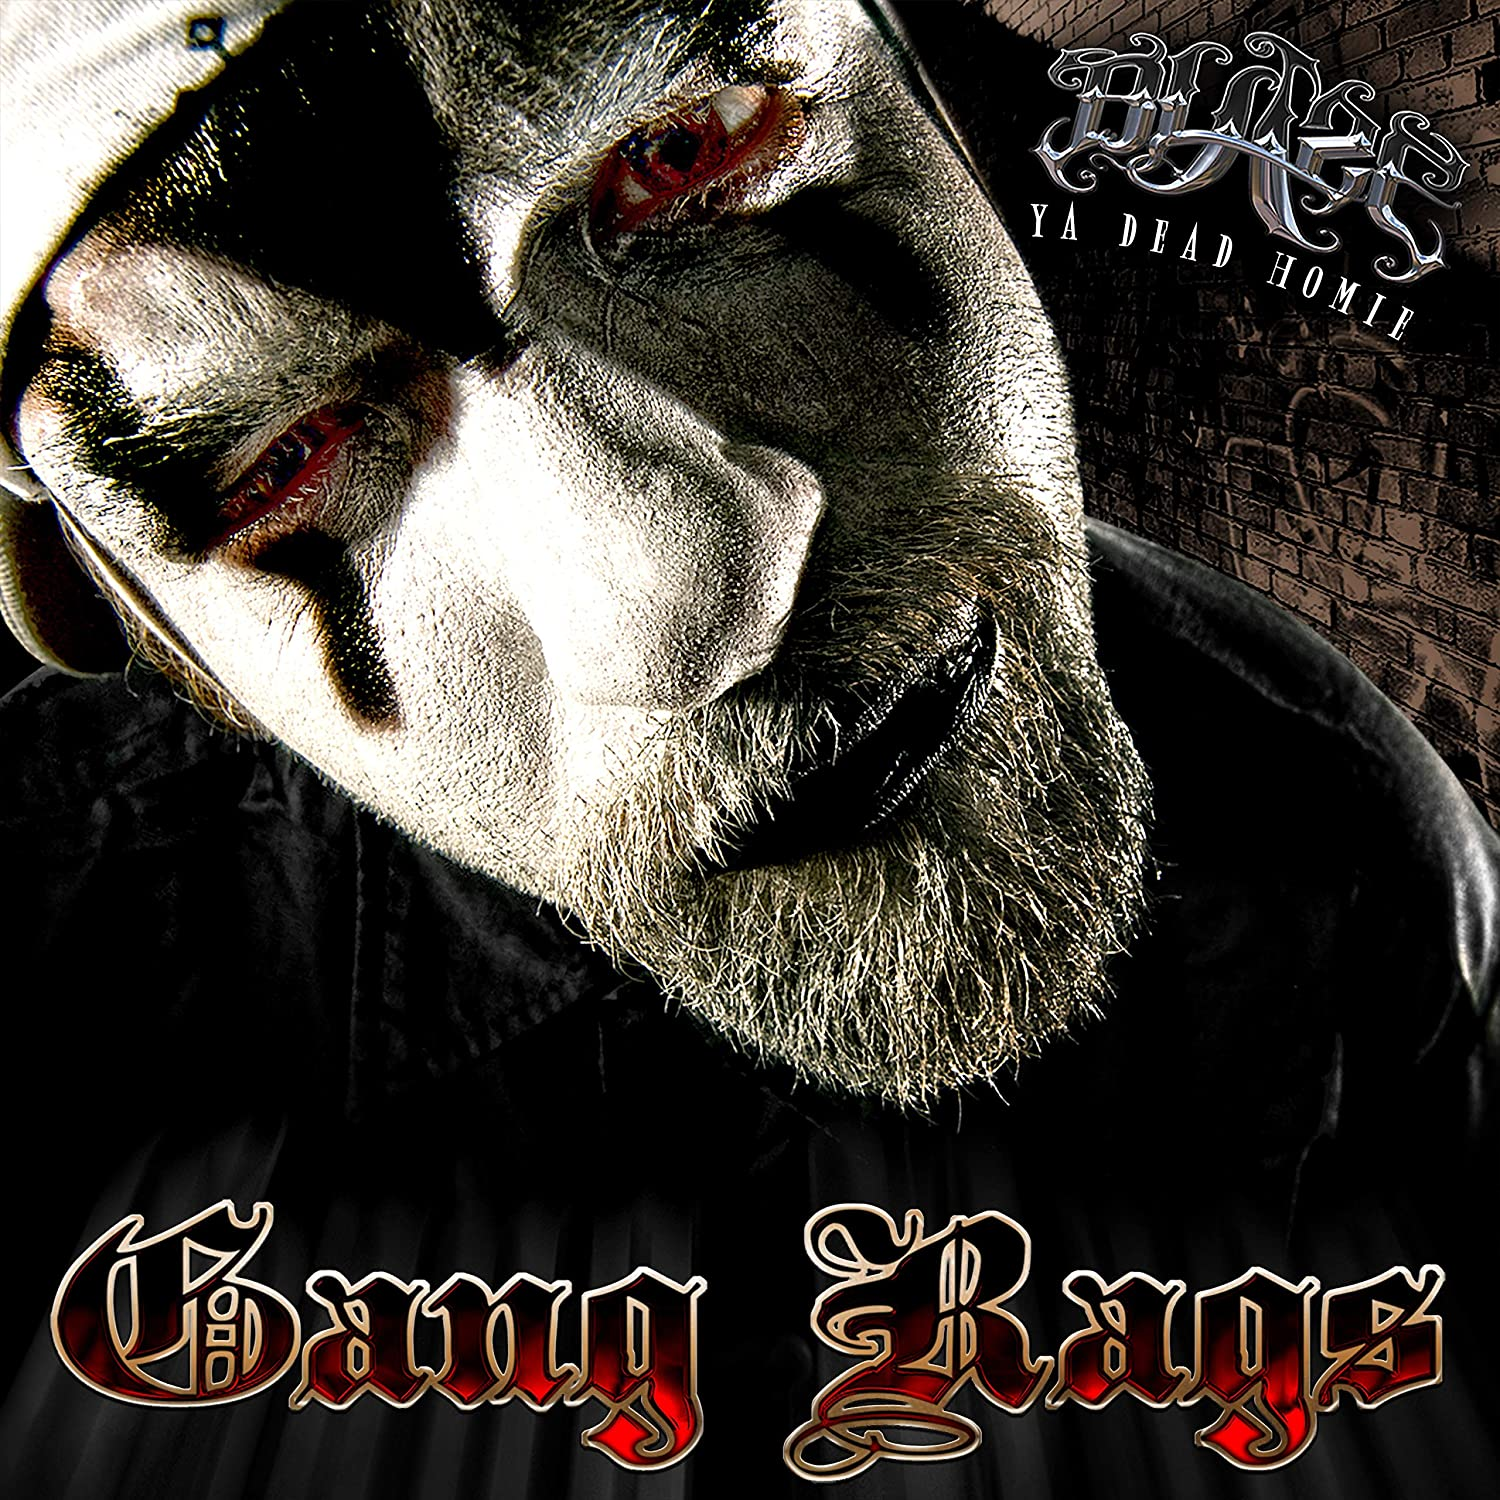 Blaze Ya Dead Homie - Gang Rags (10th Anniversary Edition) [Limited Edition 2LP]